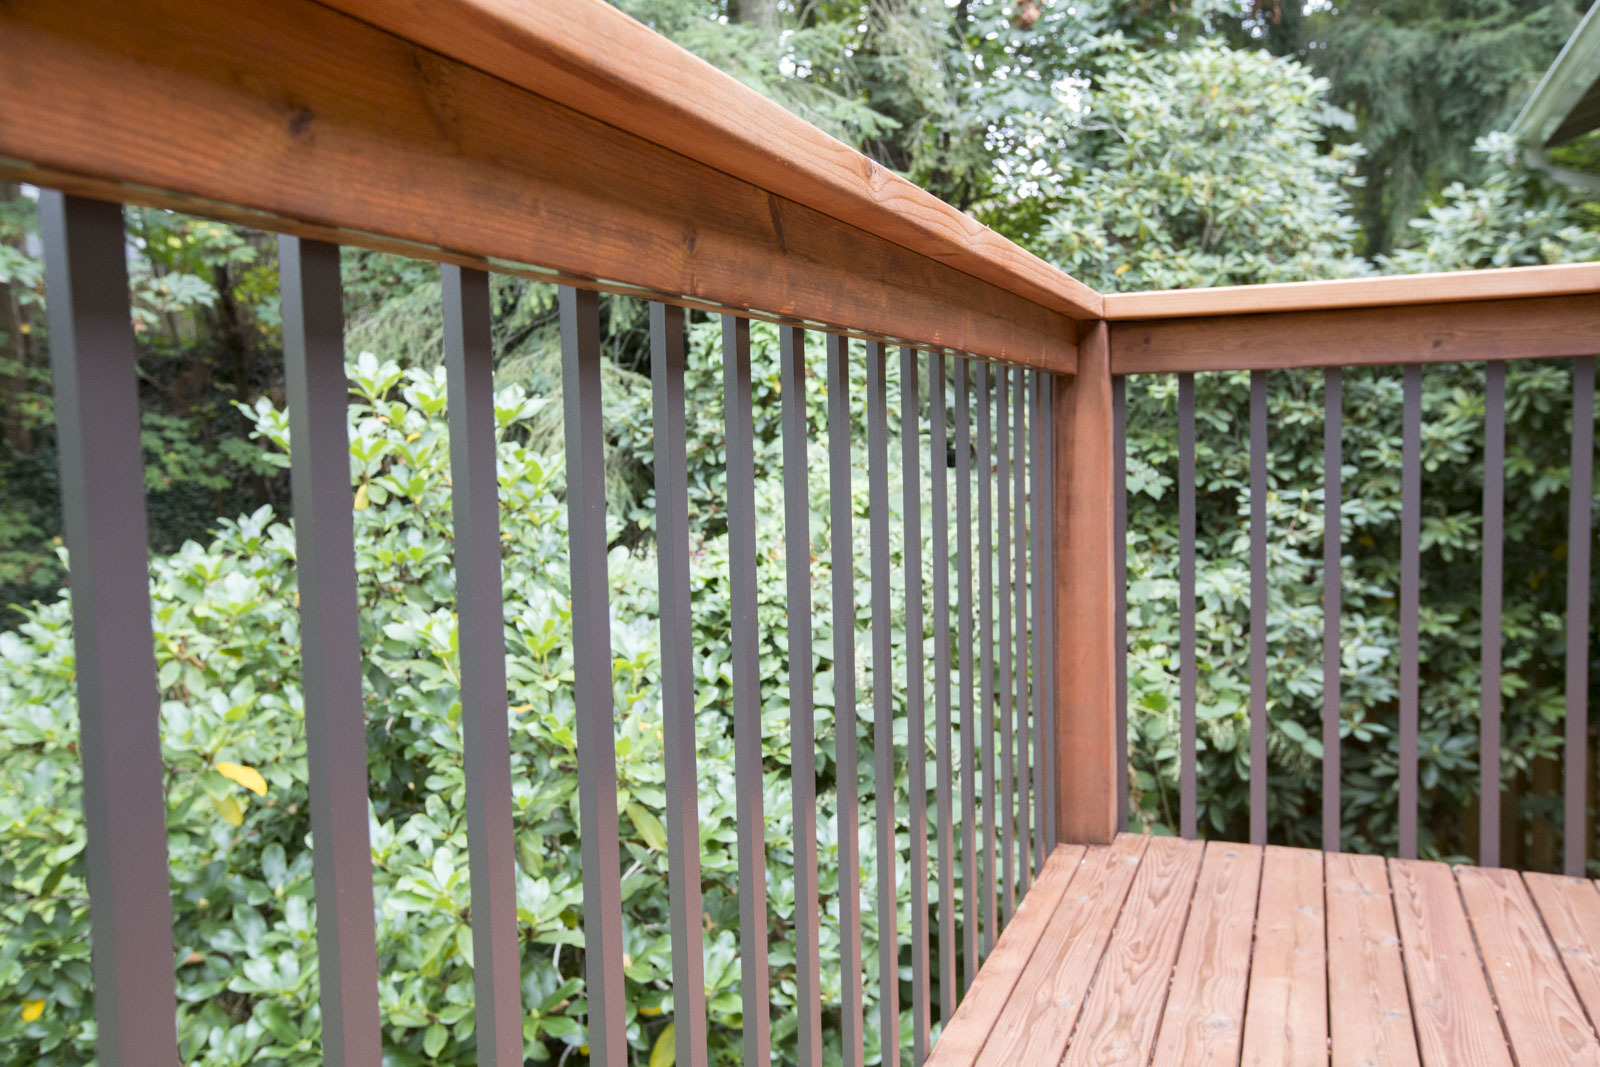 Installing Deck Railing Aluminum Balusters For Deck